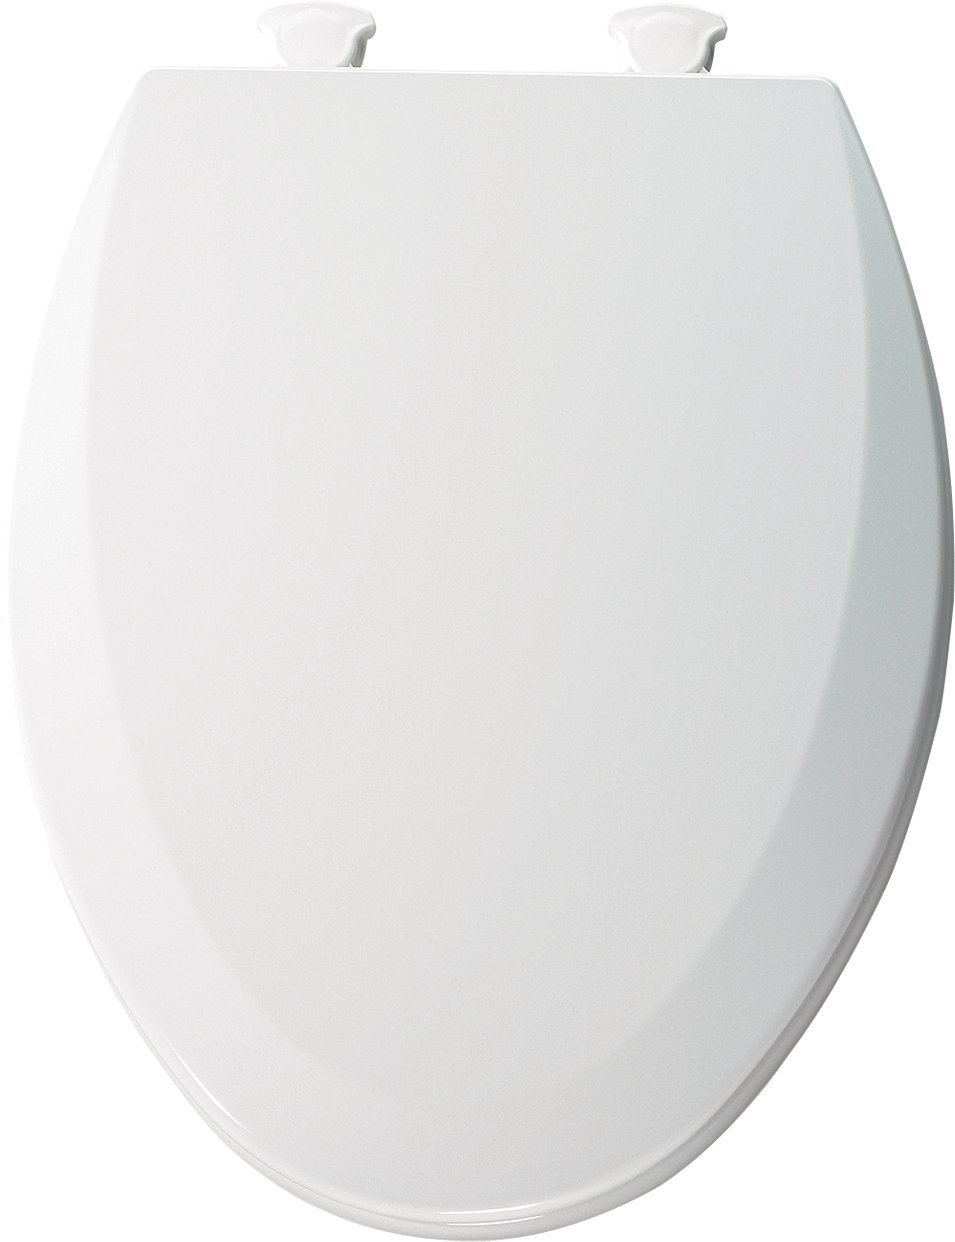 Bemis 1500EC162 Molded Wood Elongated Toilet Seat With Easy Clean and Change Hinge Silver